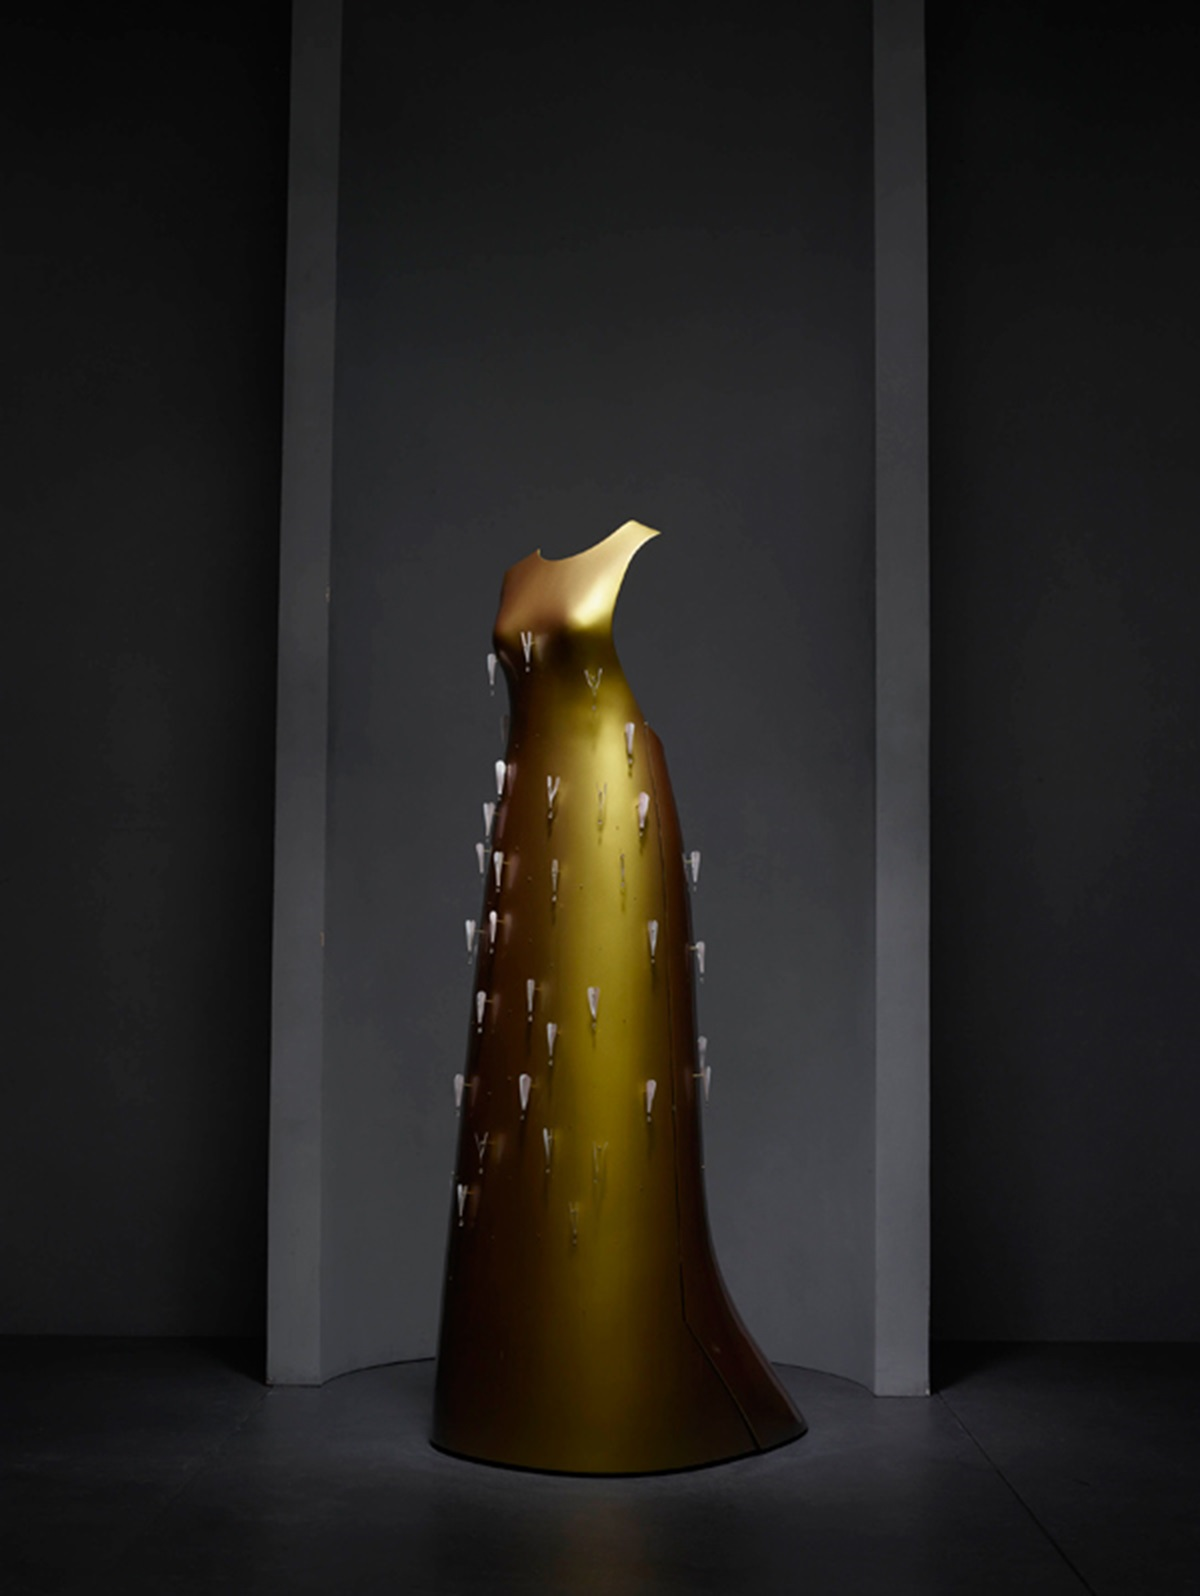 """""""Kaikoku"""" floating dress by Hussein Chalayan in collaboration with Swarovski for the Autumn/Winter 2011-2012 collection 